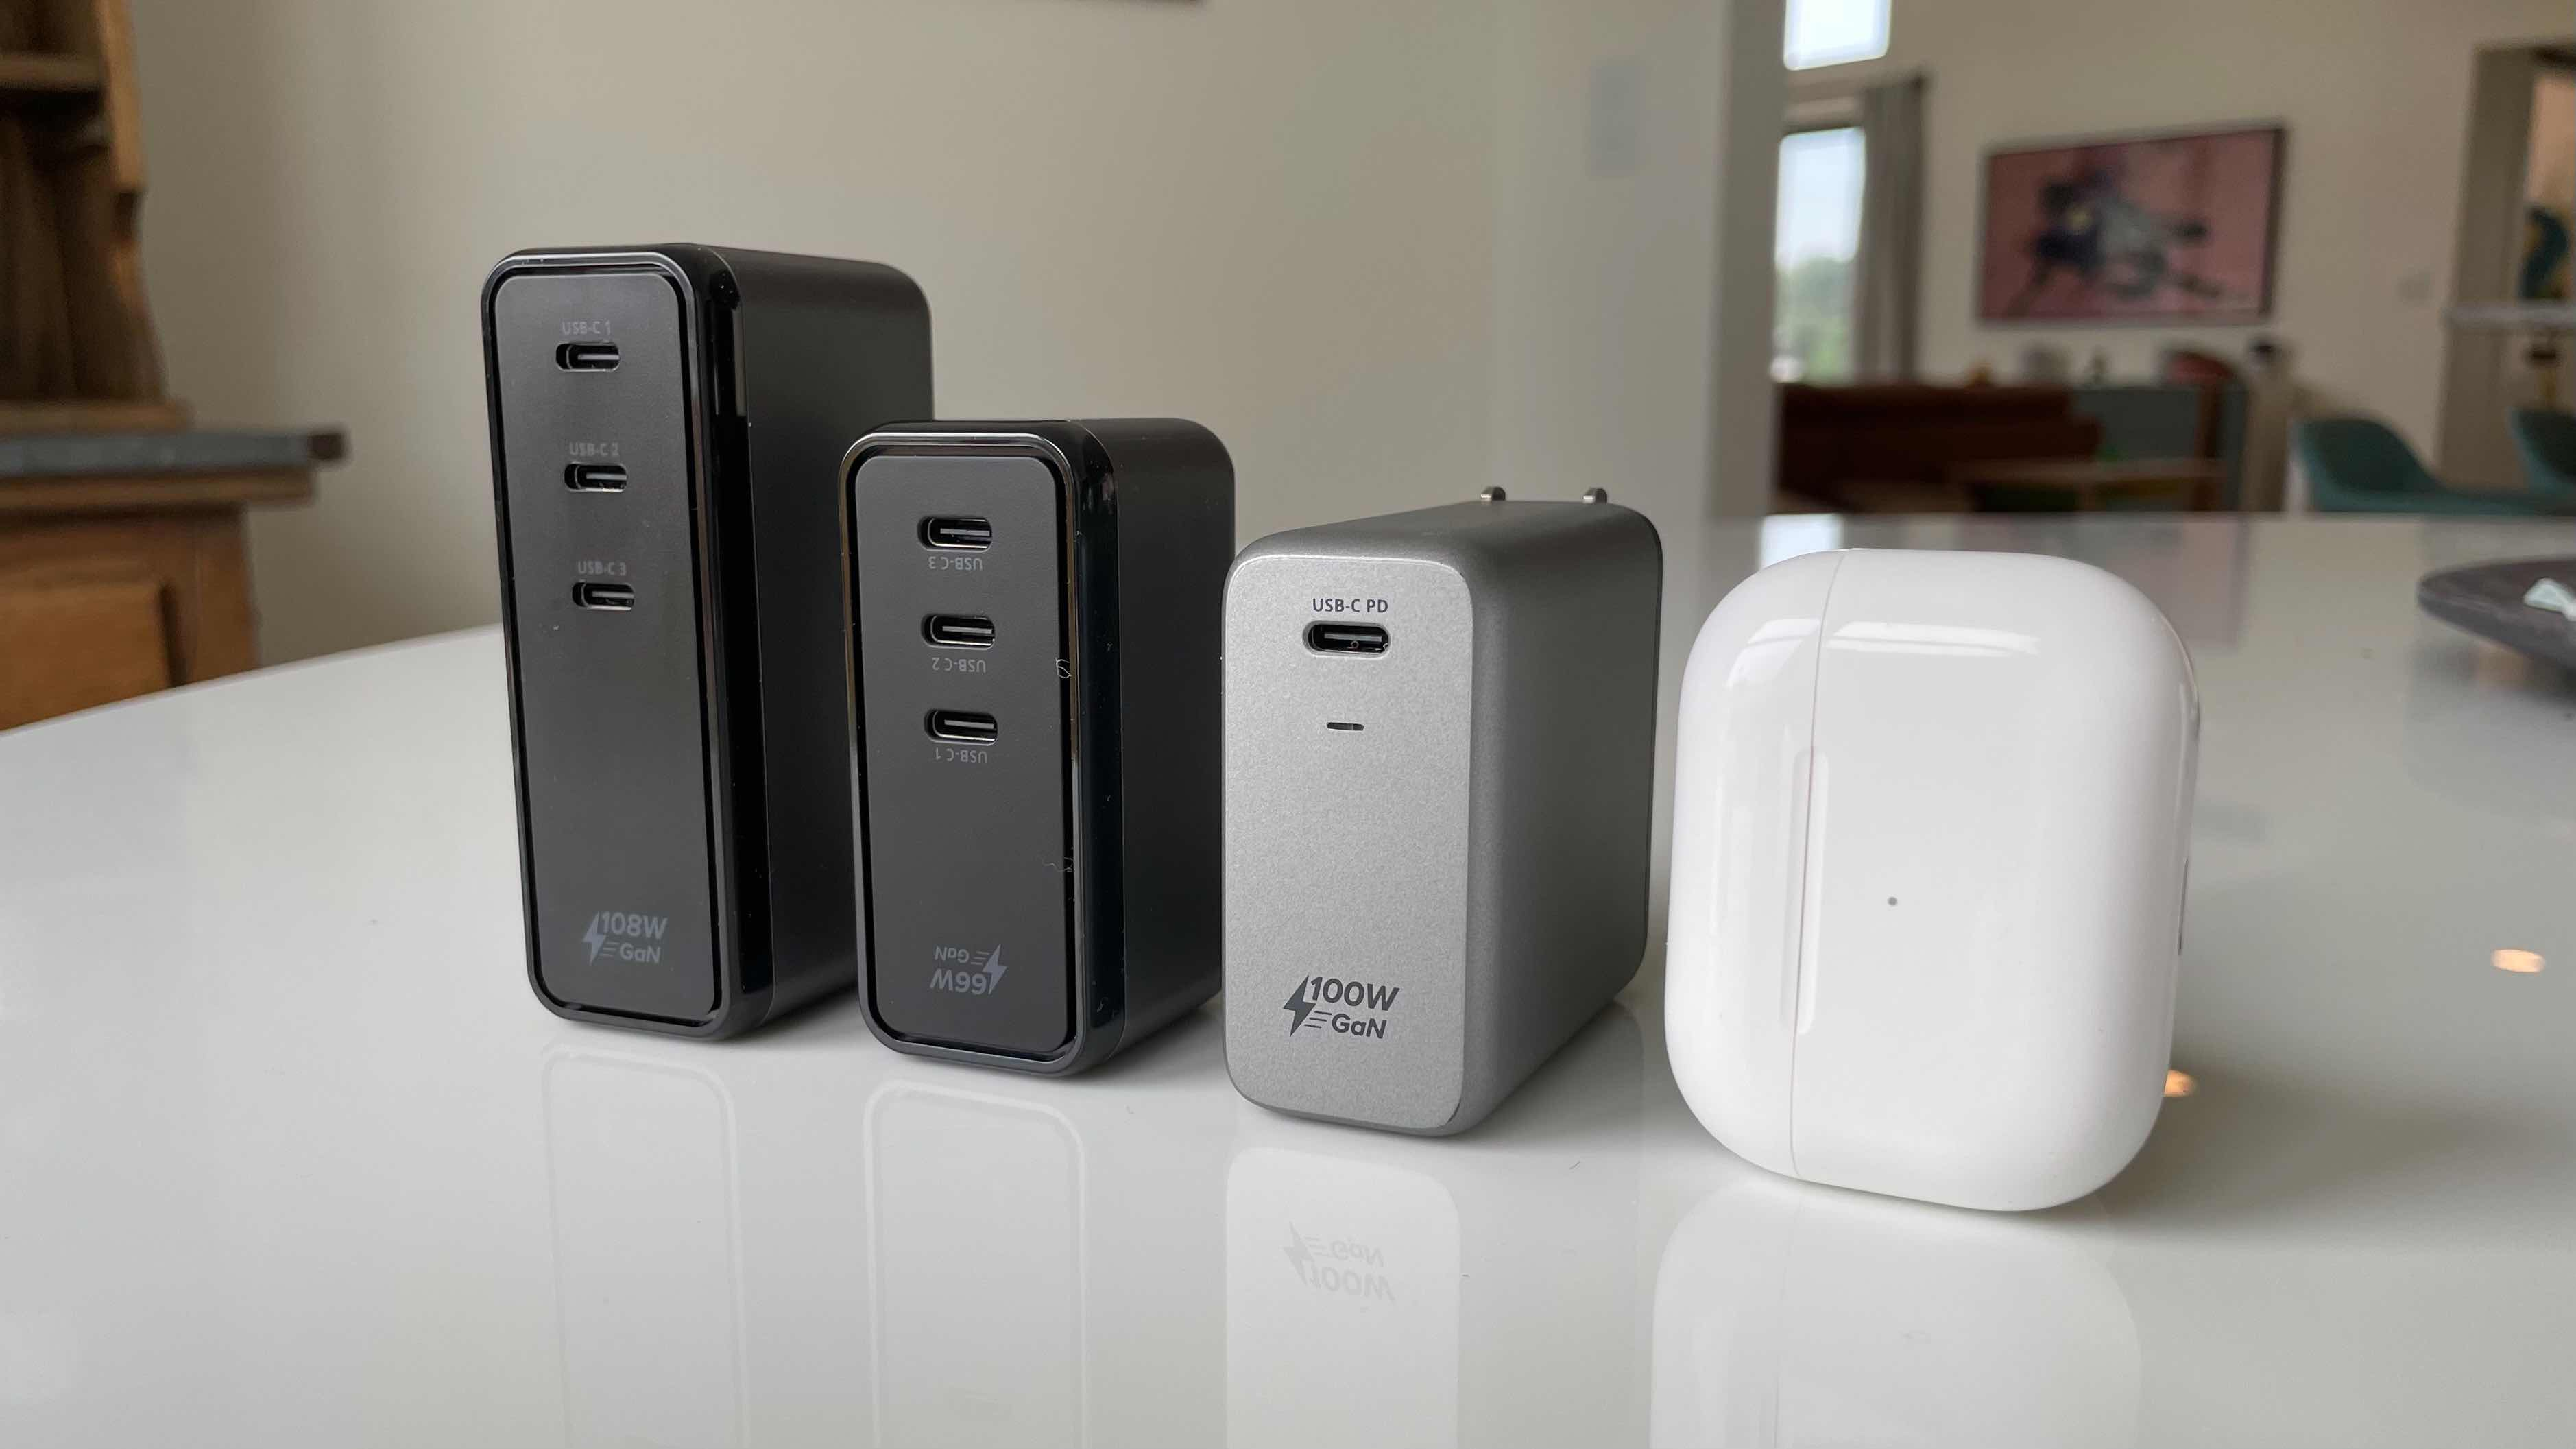 Satechi GaN USB-C Charger lineup - compared against AirPods Pro case